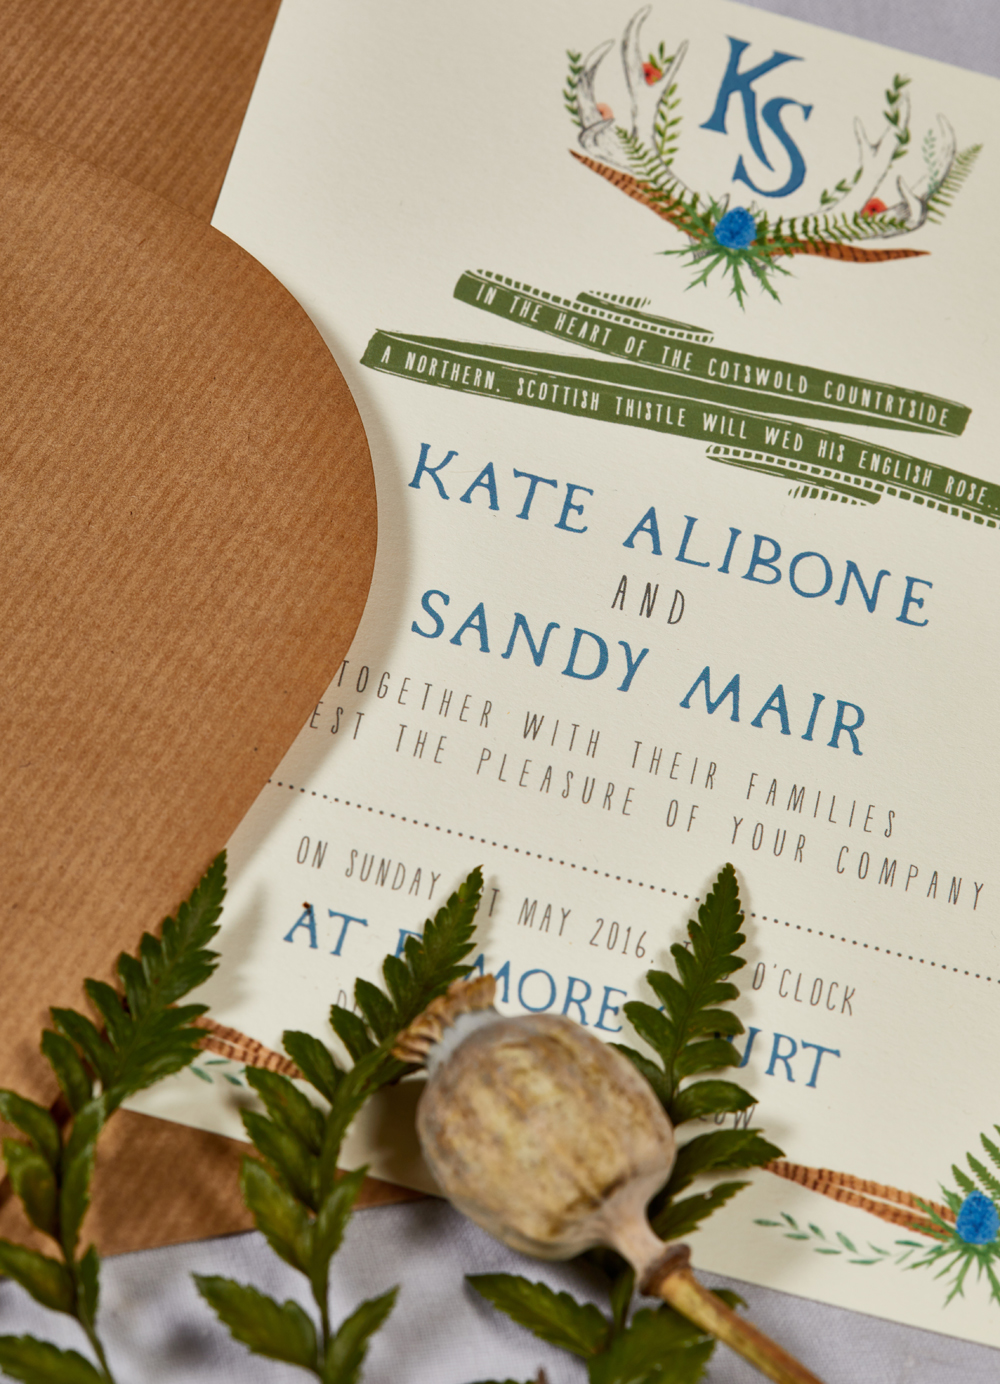 Kate and Sandy's bespoke wedding invitation